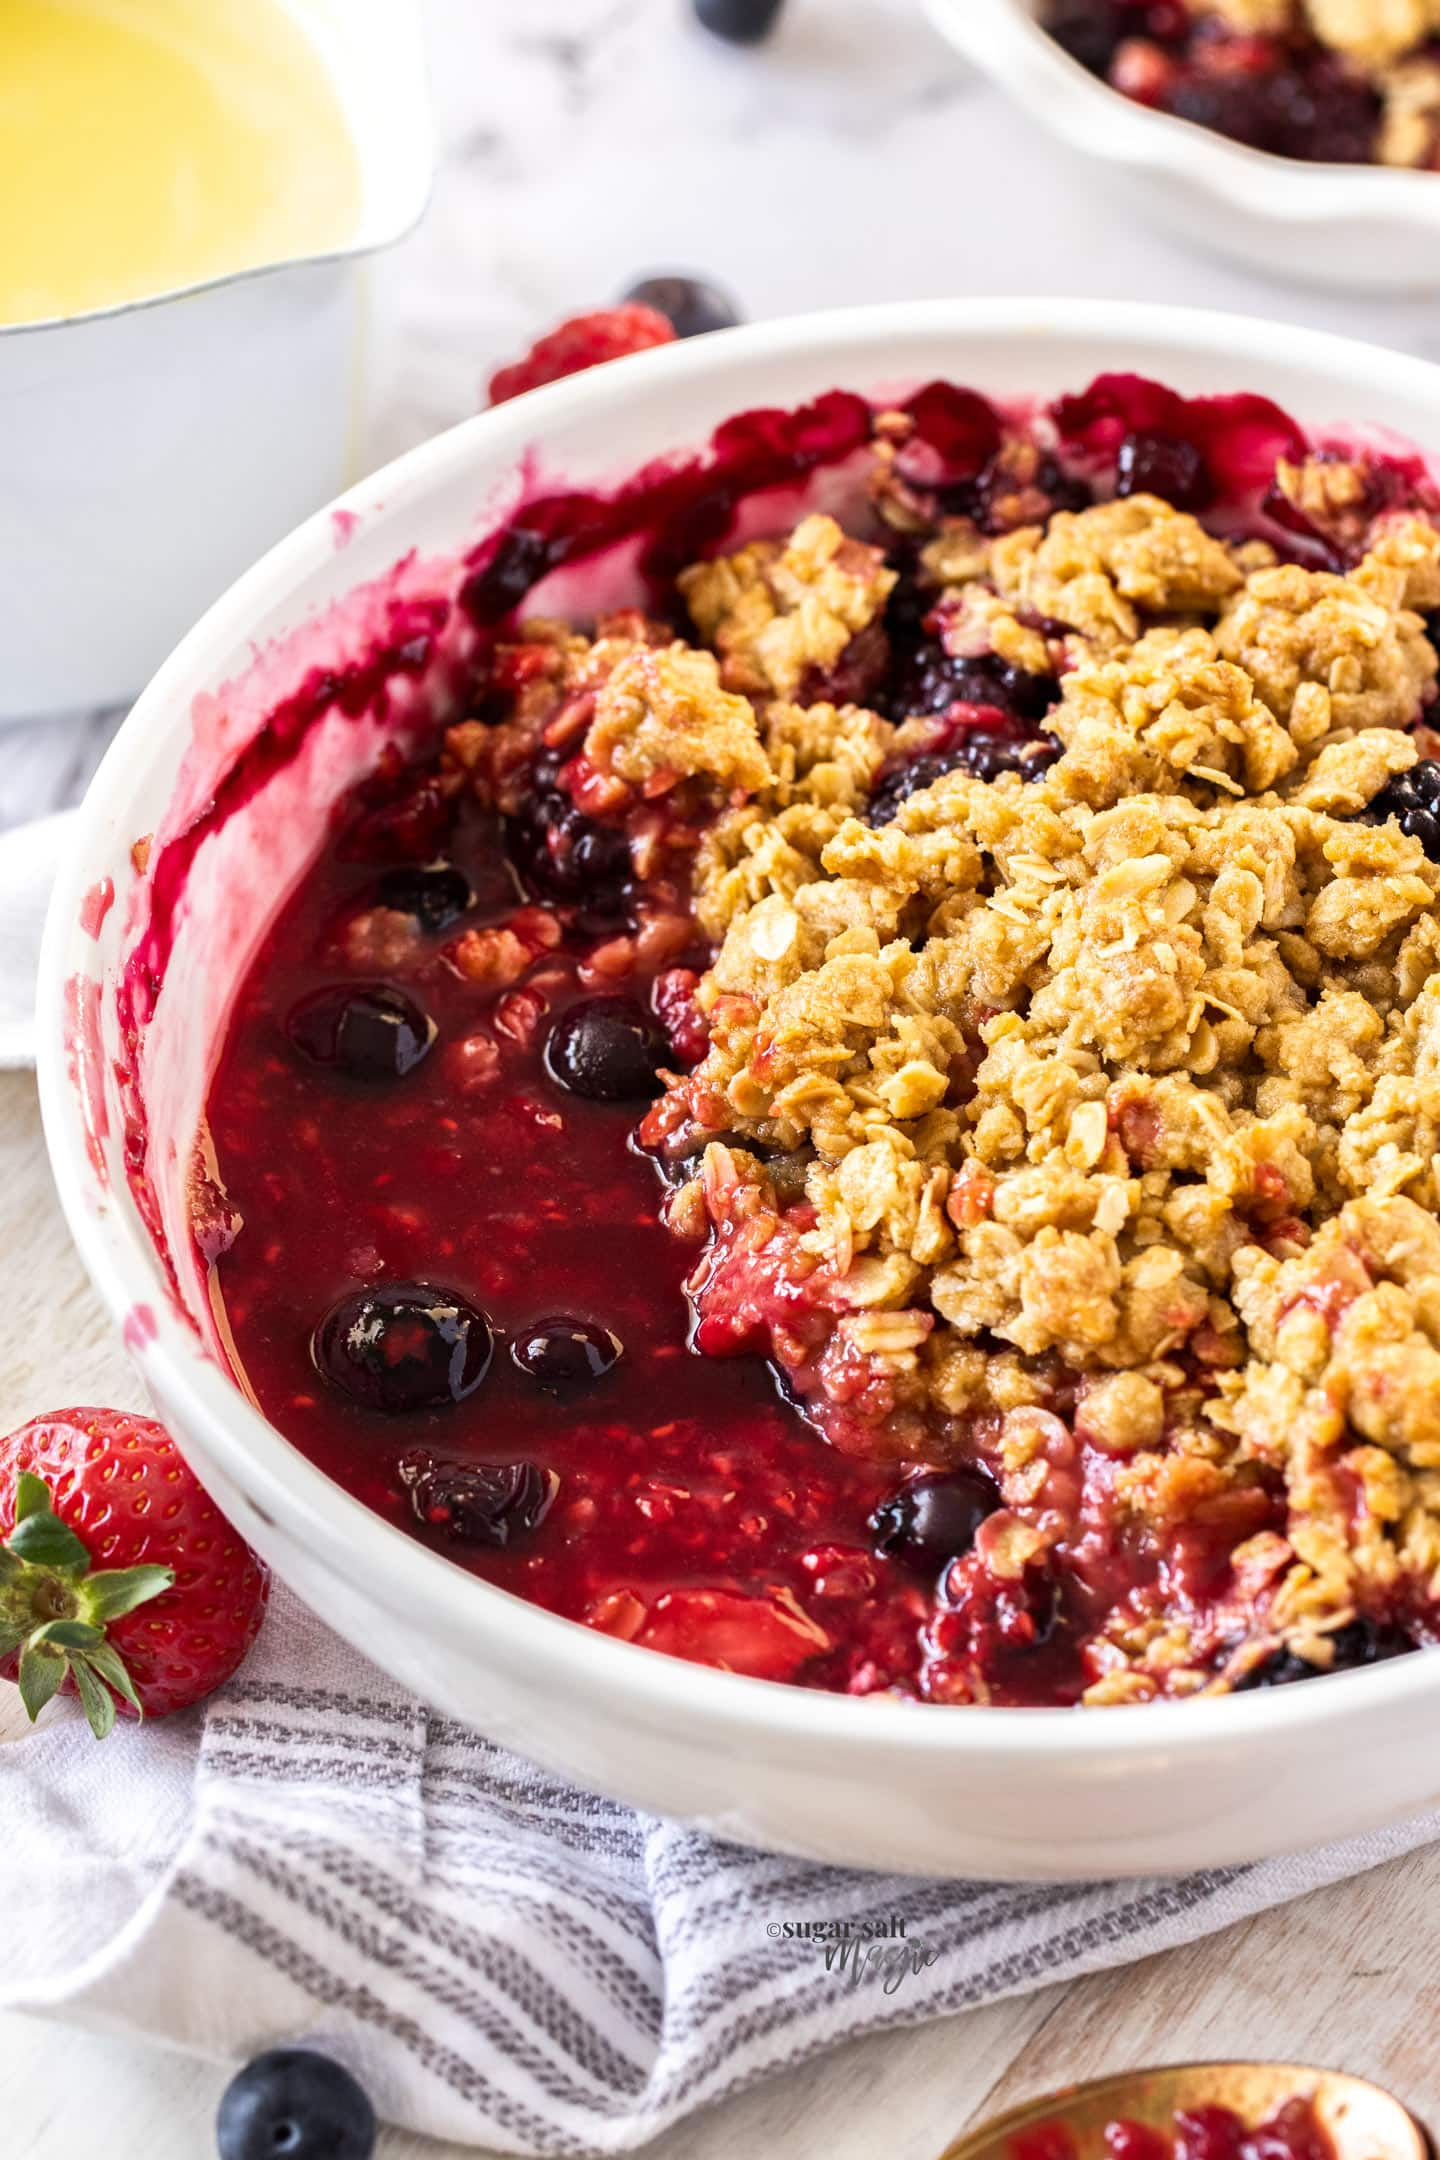 A white pie dish filled with berries in syrup and a crumble topping